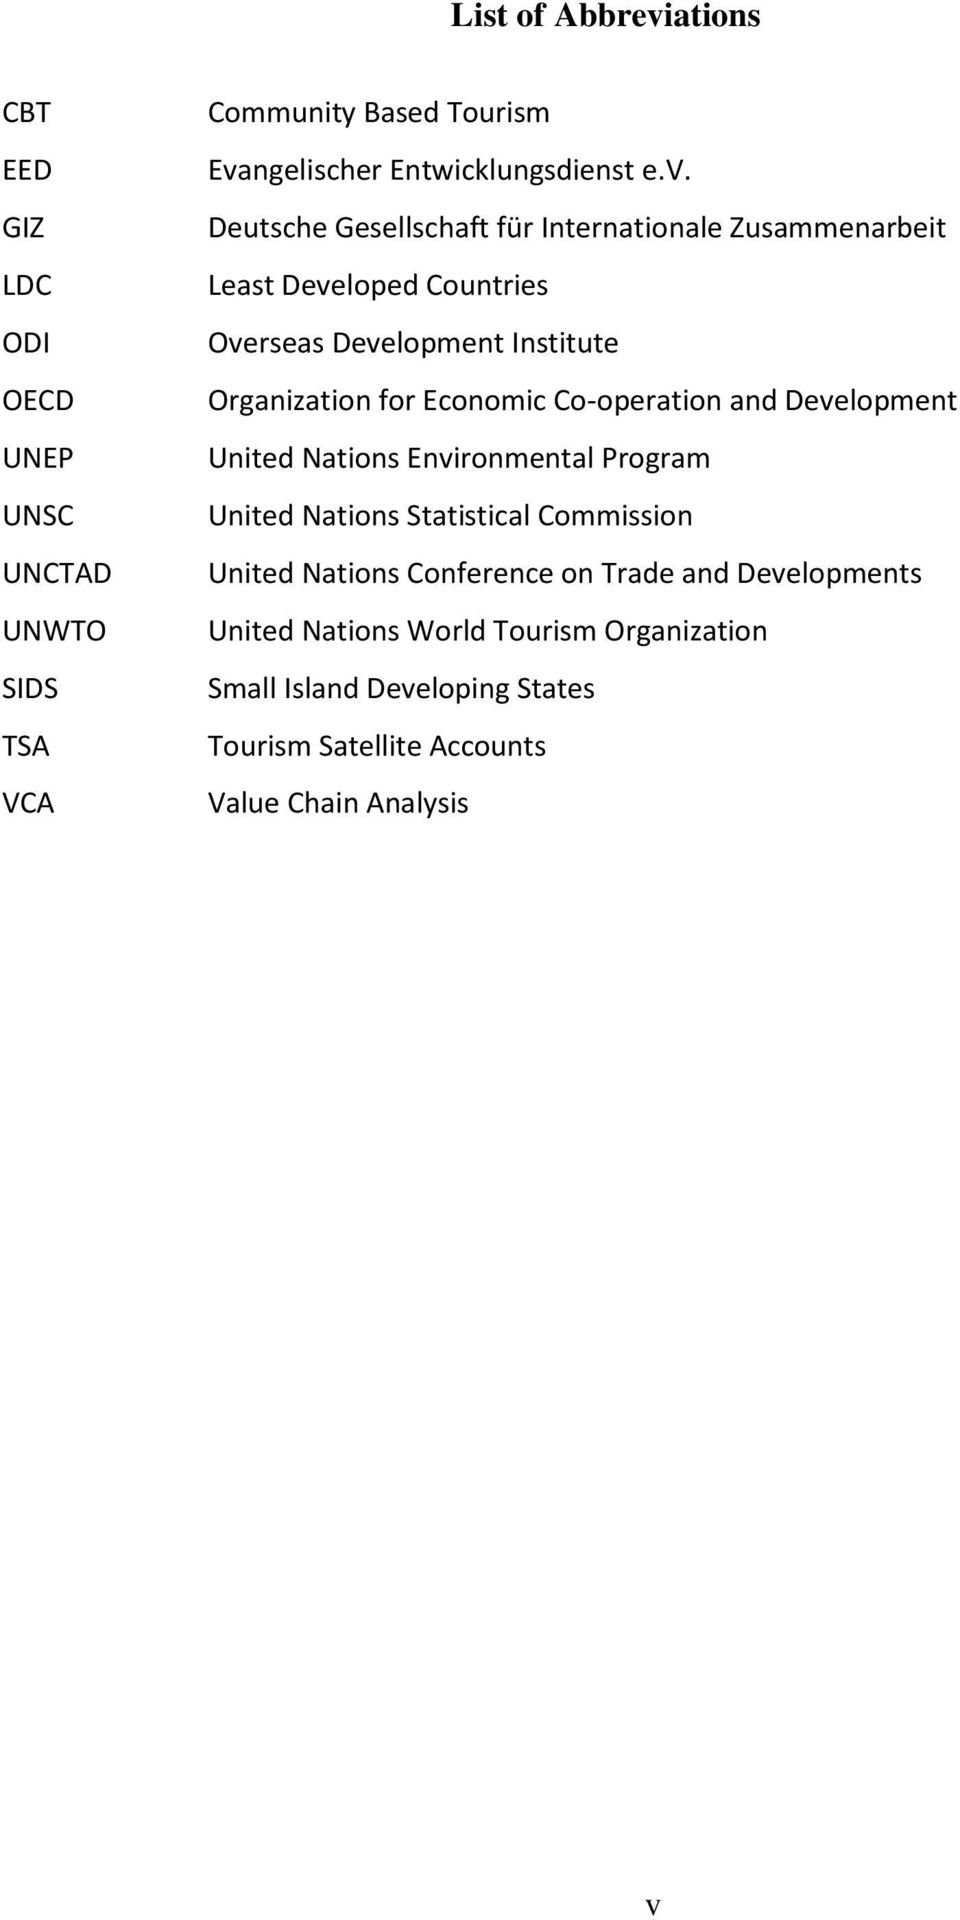 Economic Co-operation and Development United Nations Environmental Program United Nations Statistical Commission United Nations Conference